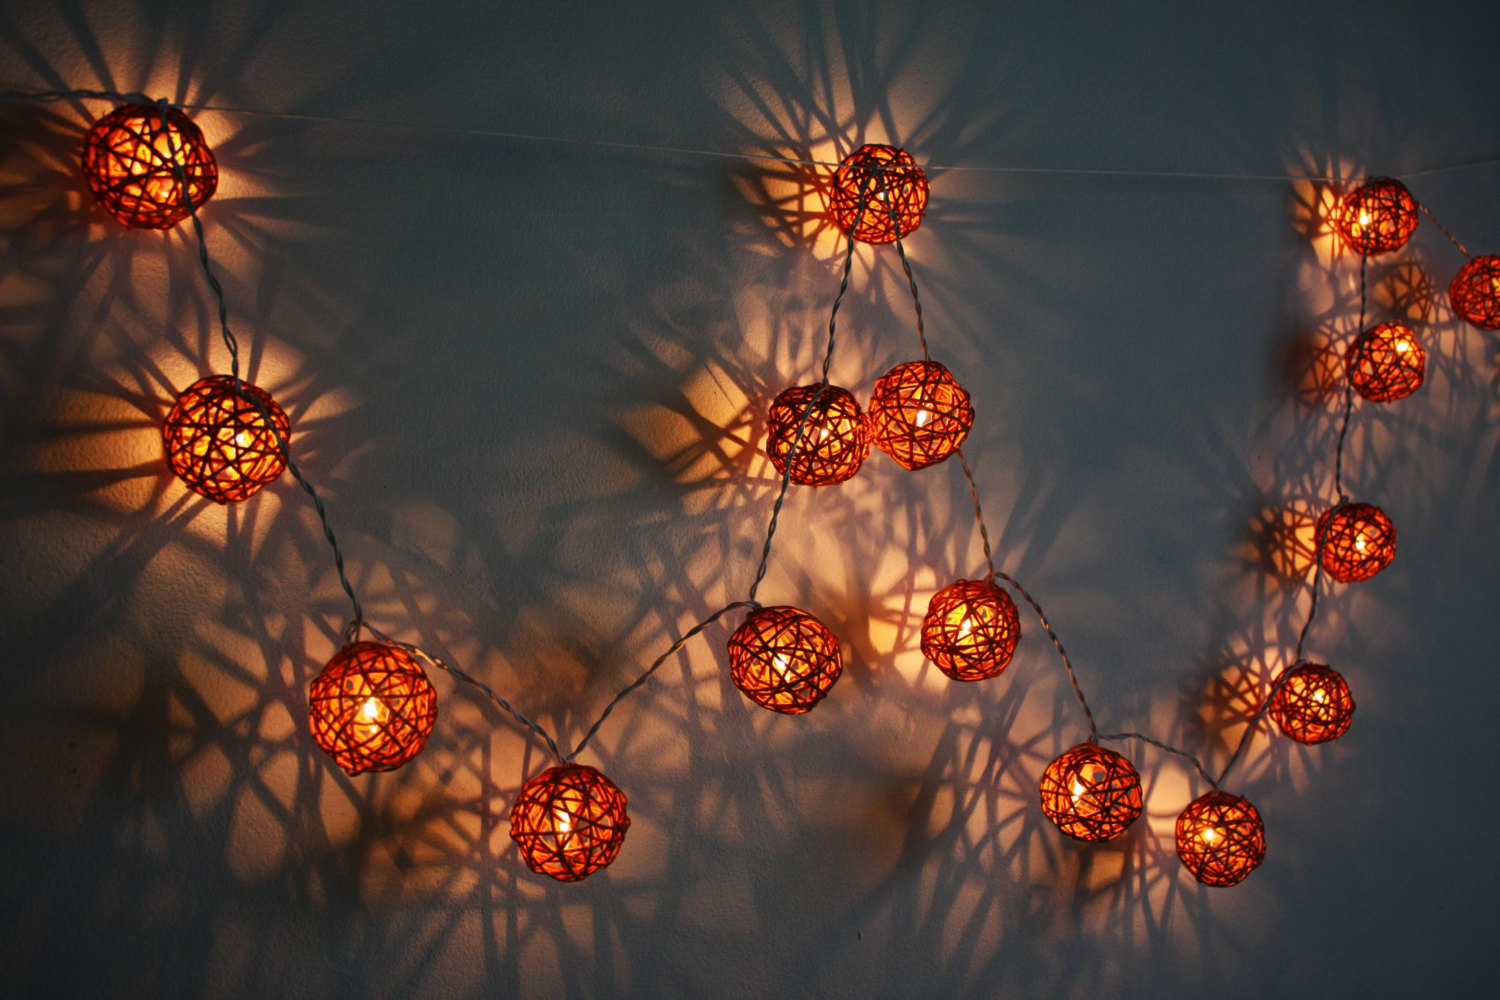 Decorative String Lights Outdoor  25 Tips By Making Your. Tent With Screen Room Attached. Nursery Wall Decor Boy. Operating Room Hats. Coral Reef Home Decor. White Decorative Shelves. Teacher Desk Decorations. Living Room Bar Furniture. Outside Window Decor